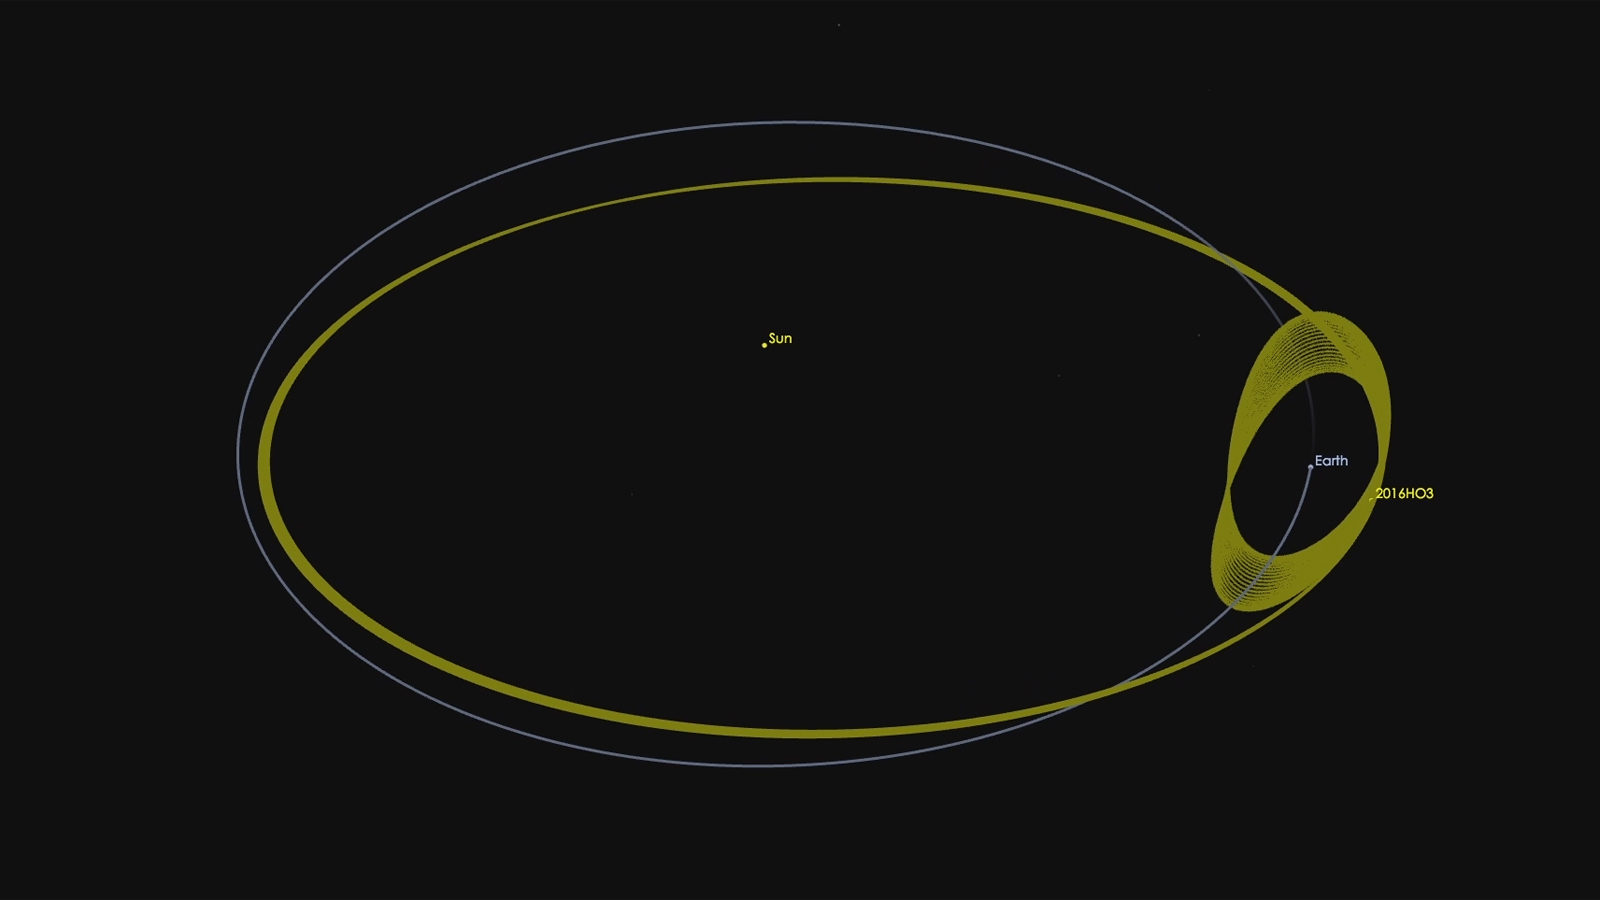 asteroid circling earth - photo #19